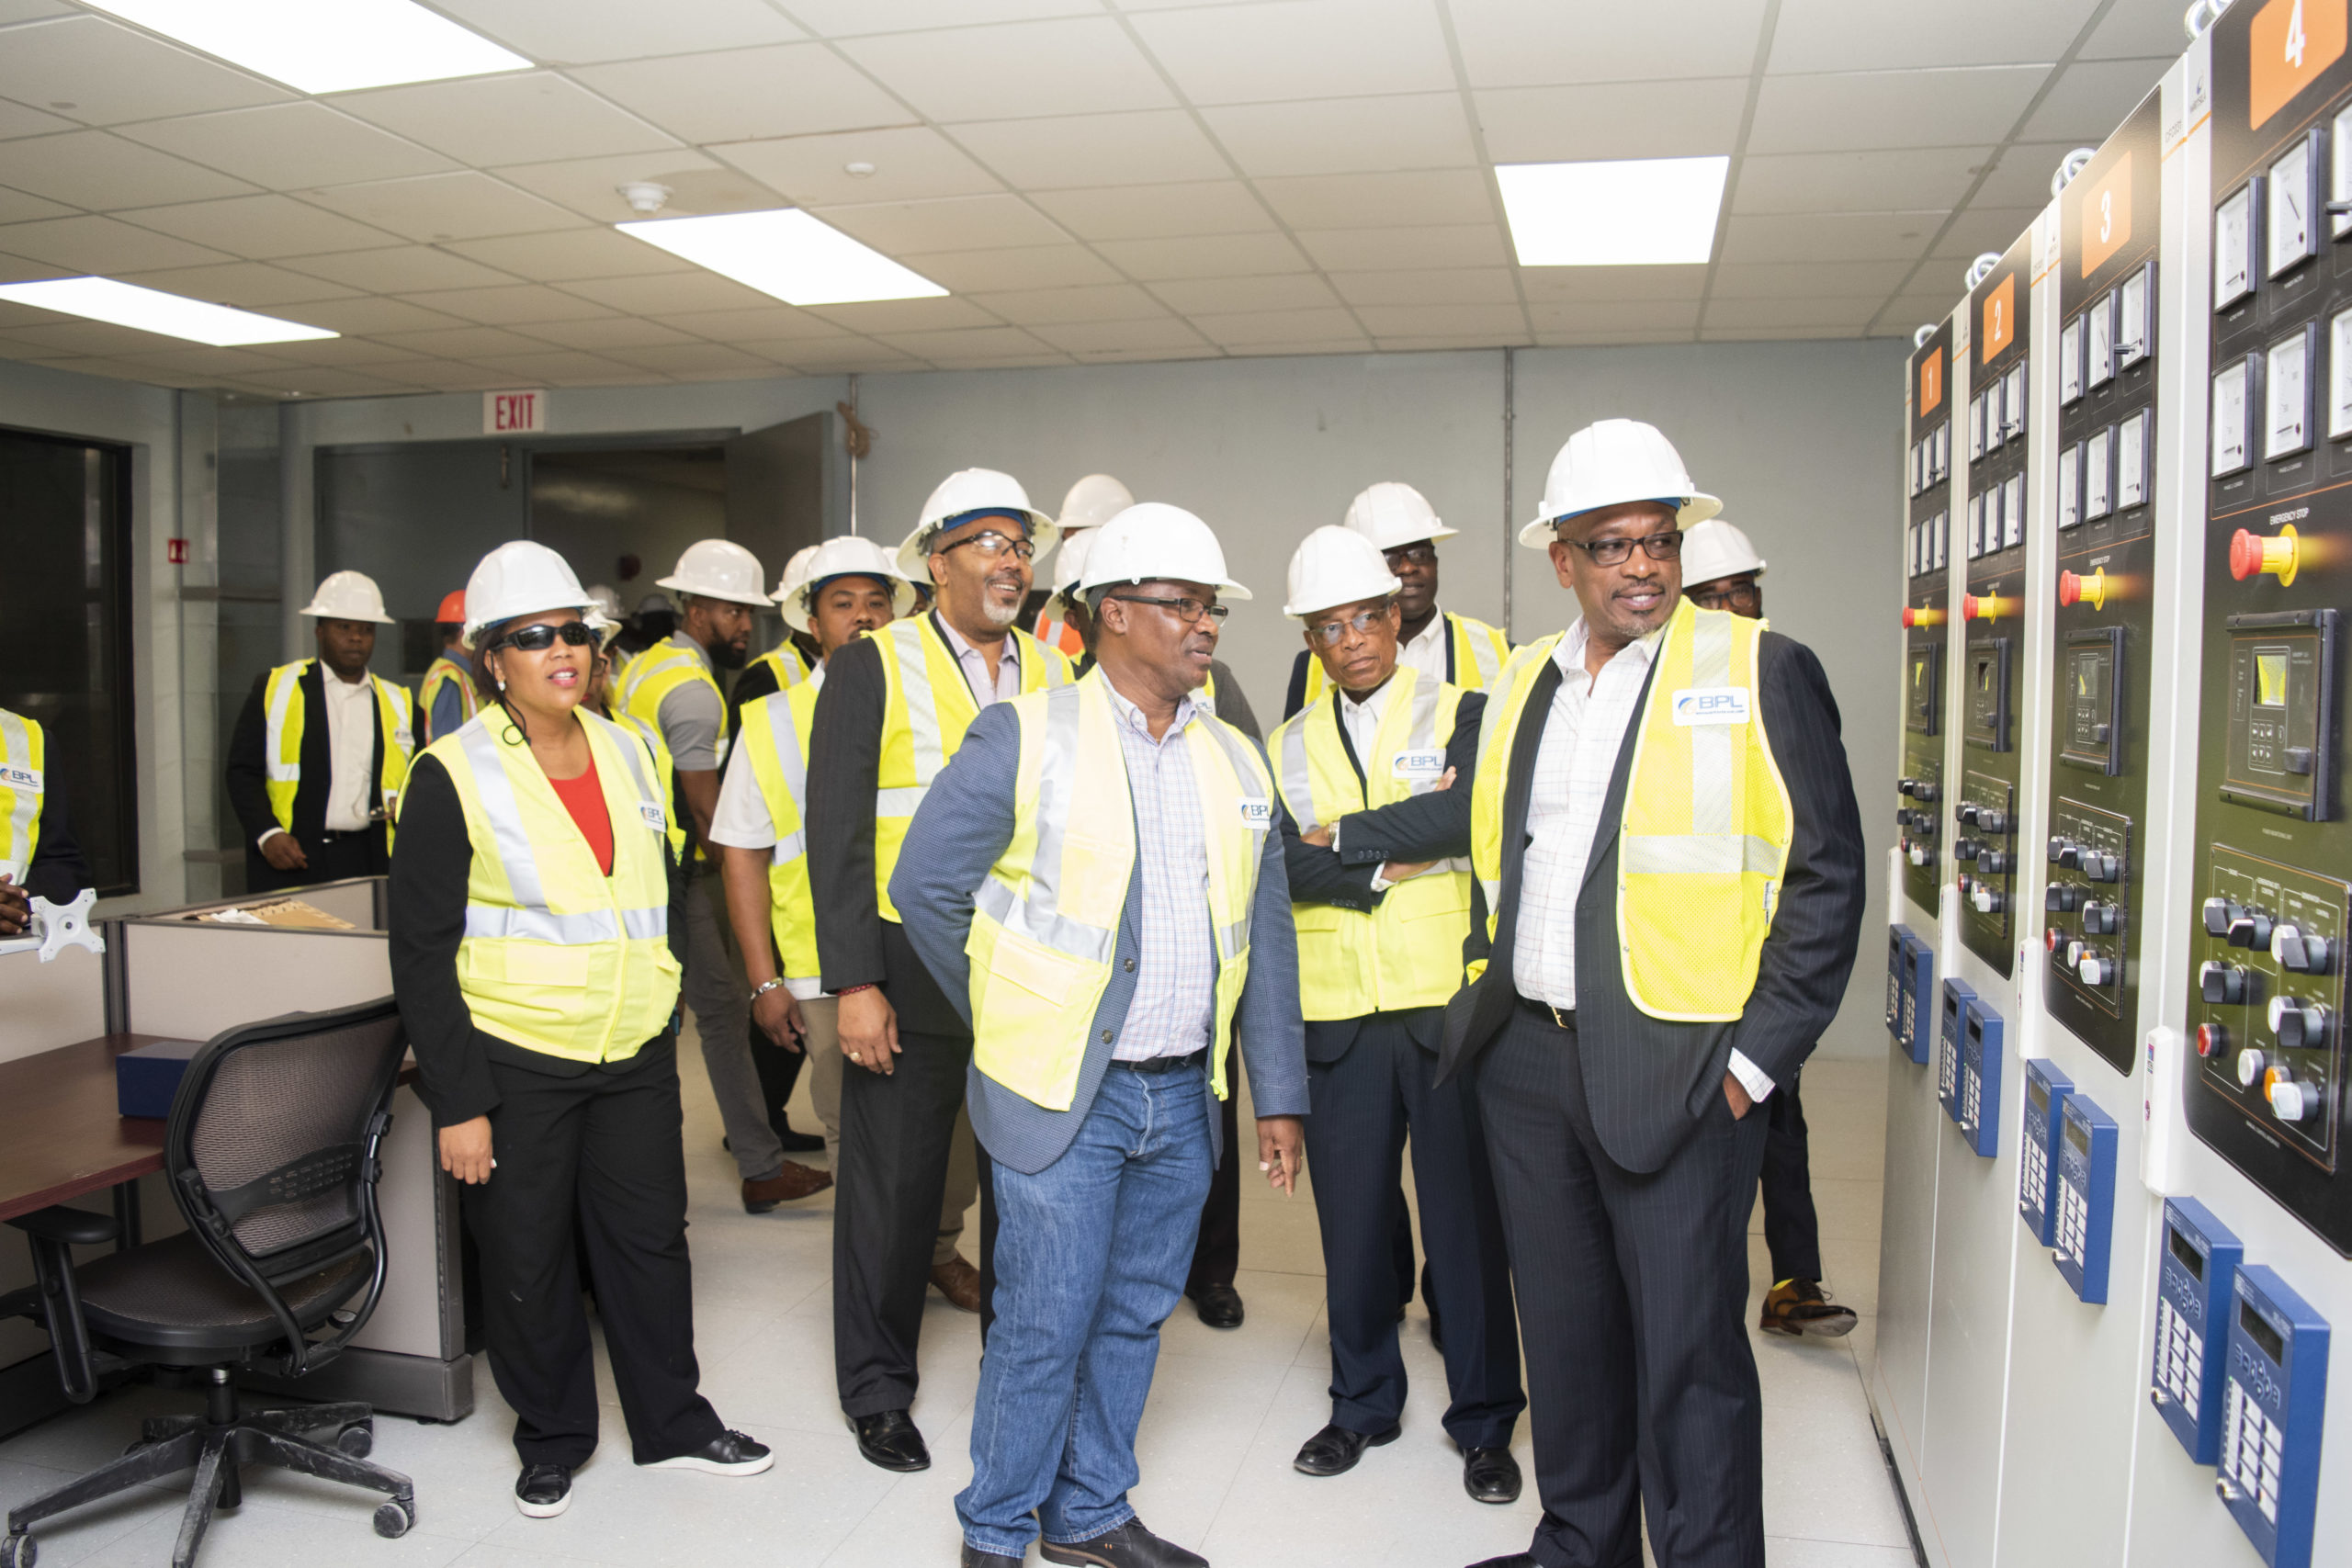 Prime Minister Minnis: Station A part of Government's energy sector reform strategy to reduce cost of living and transition to cleaner fuel